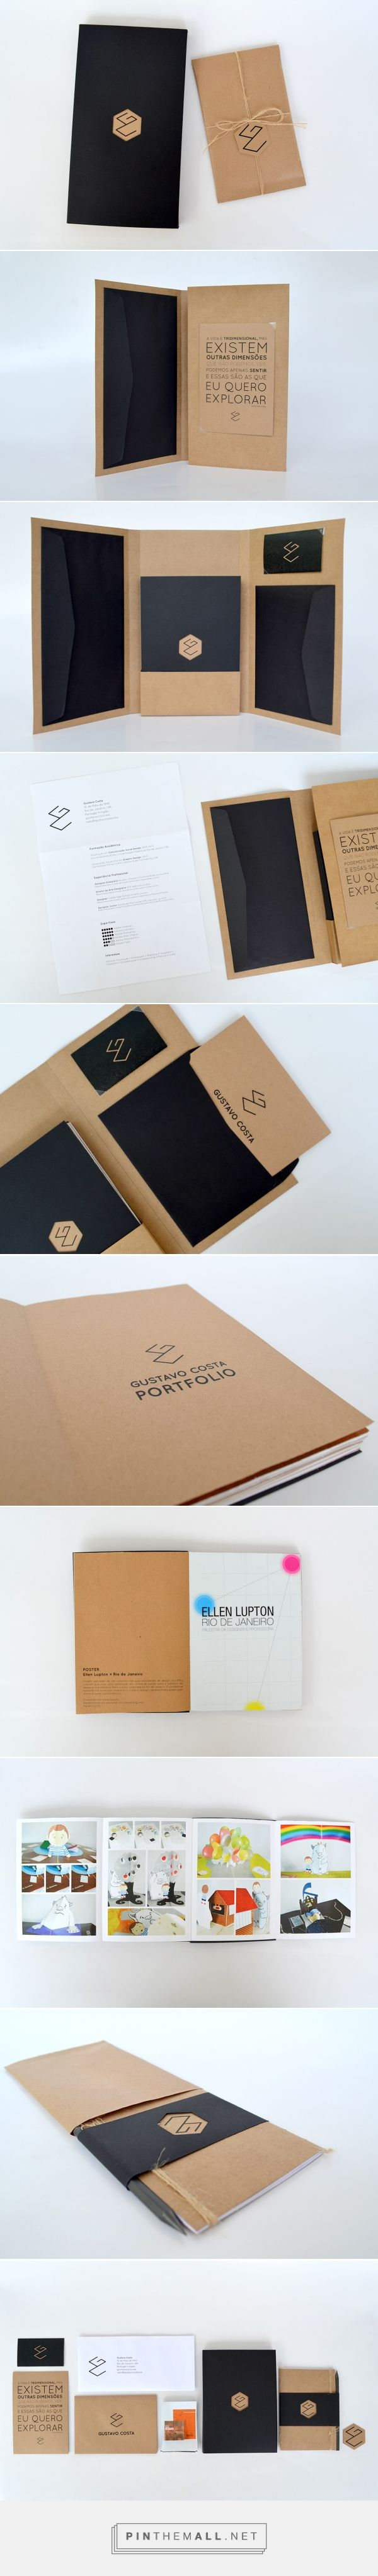 Self Promotion Kit | Gustavo Costa on Behance - created via https://pinthemall.net